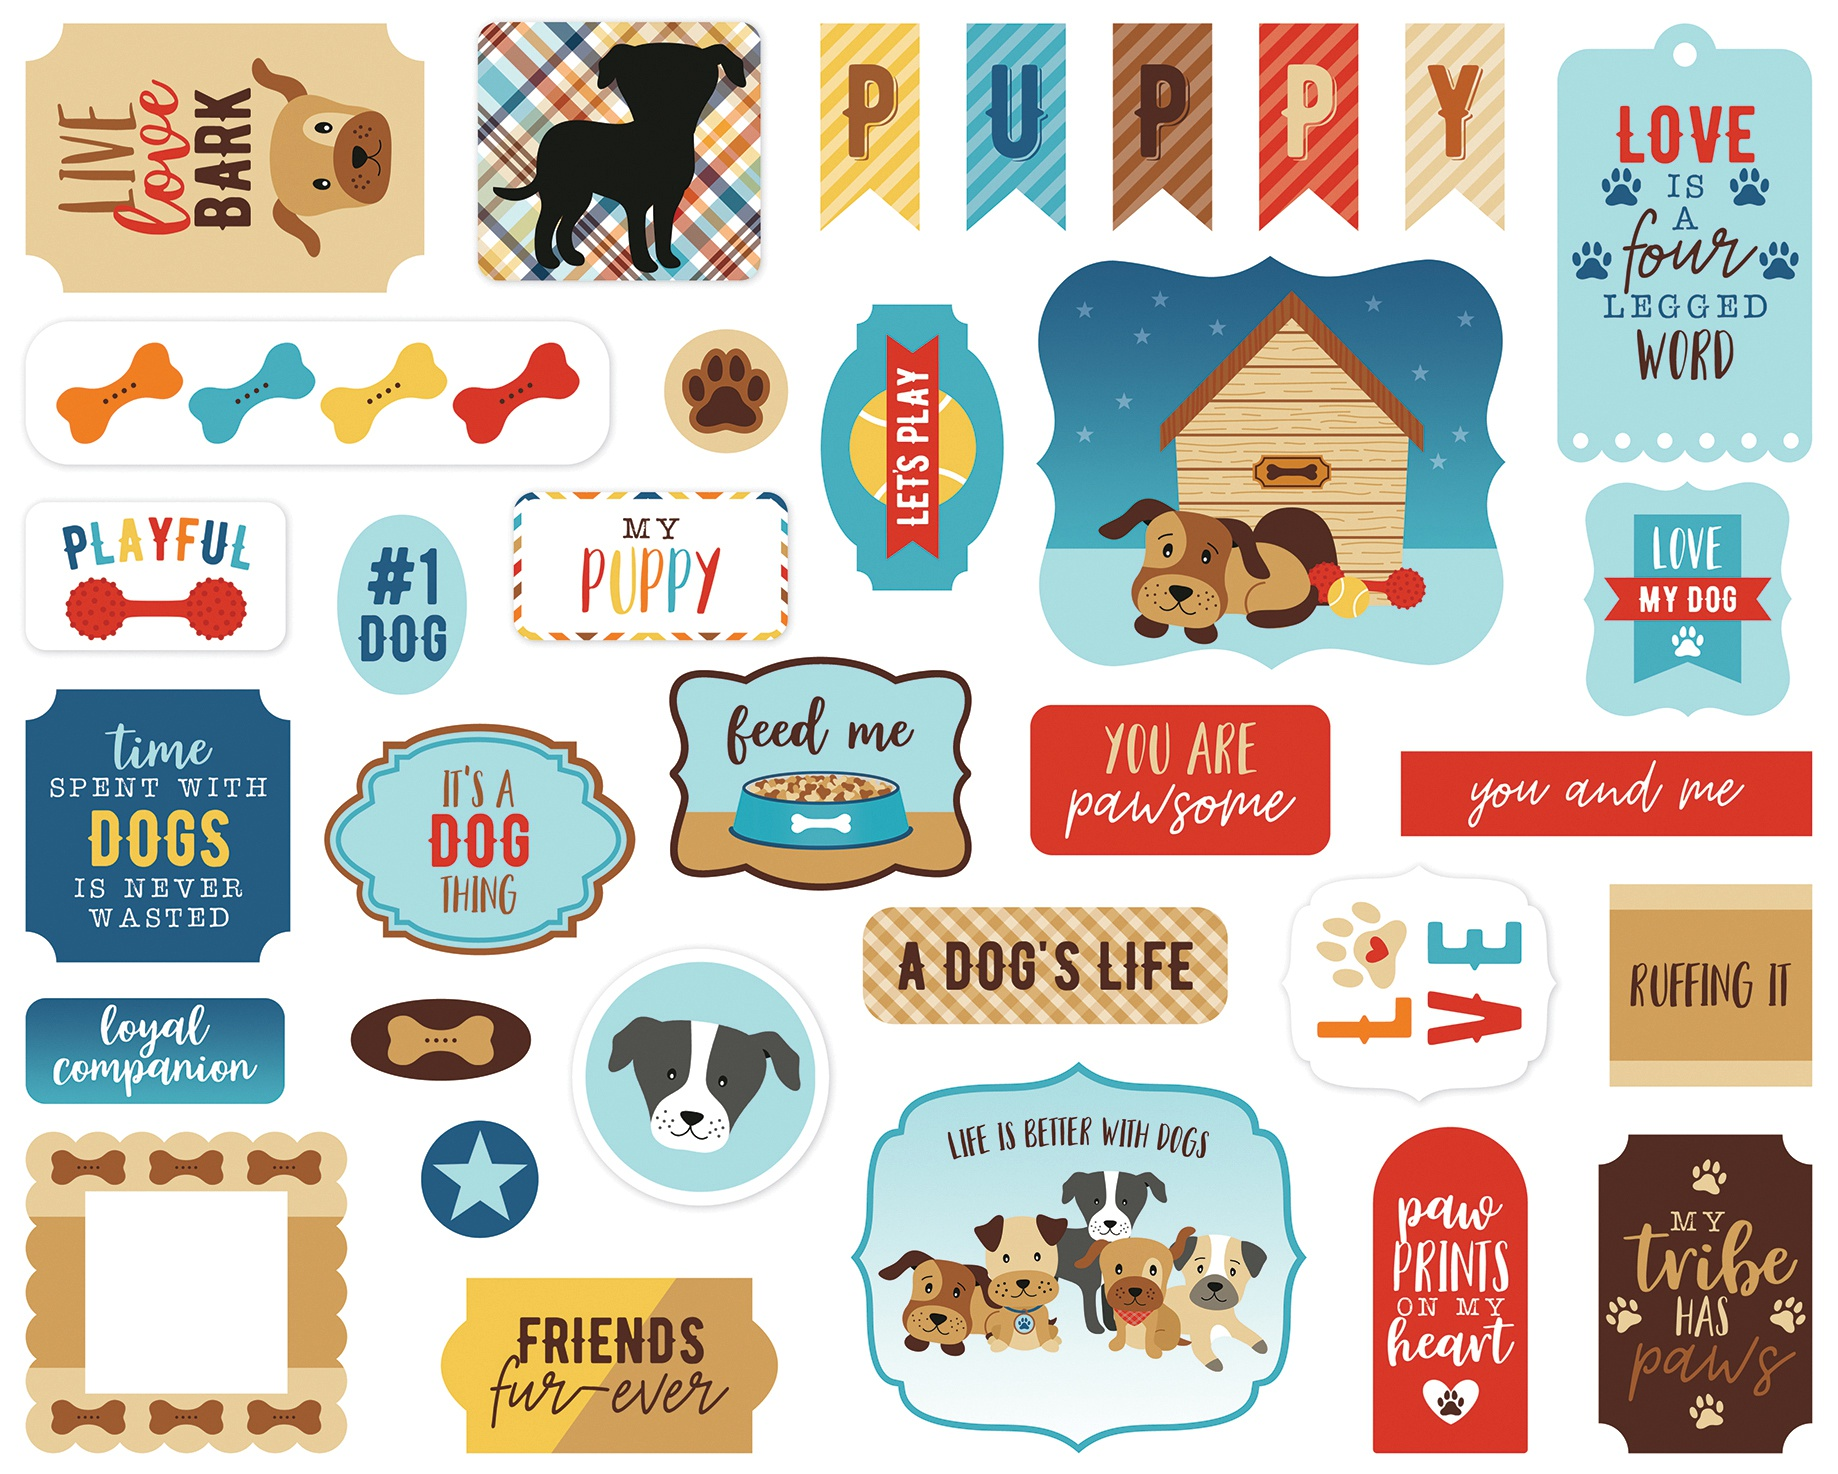 Echo Park Cardstock Ephemera 33/Pkg-Icons, I Love My Dog